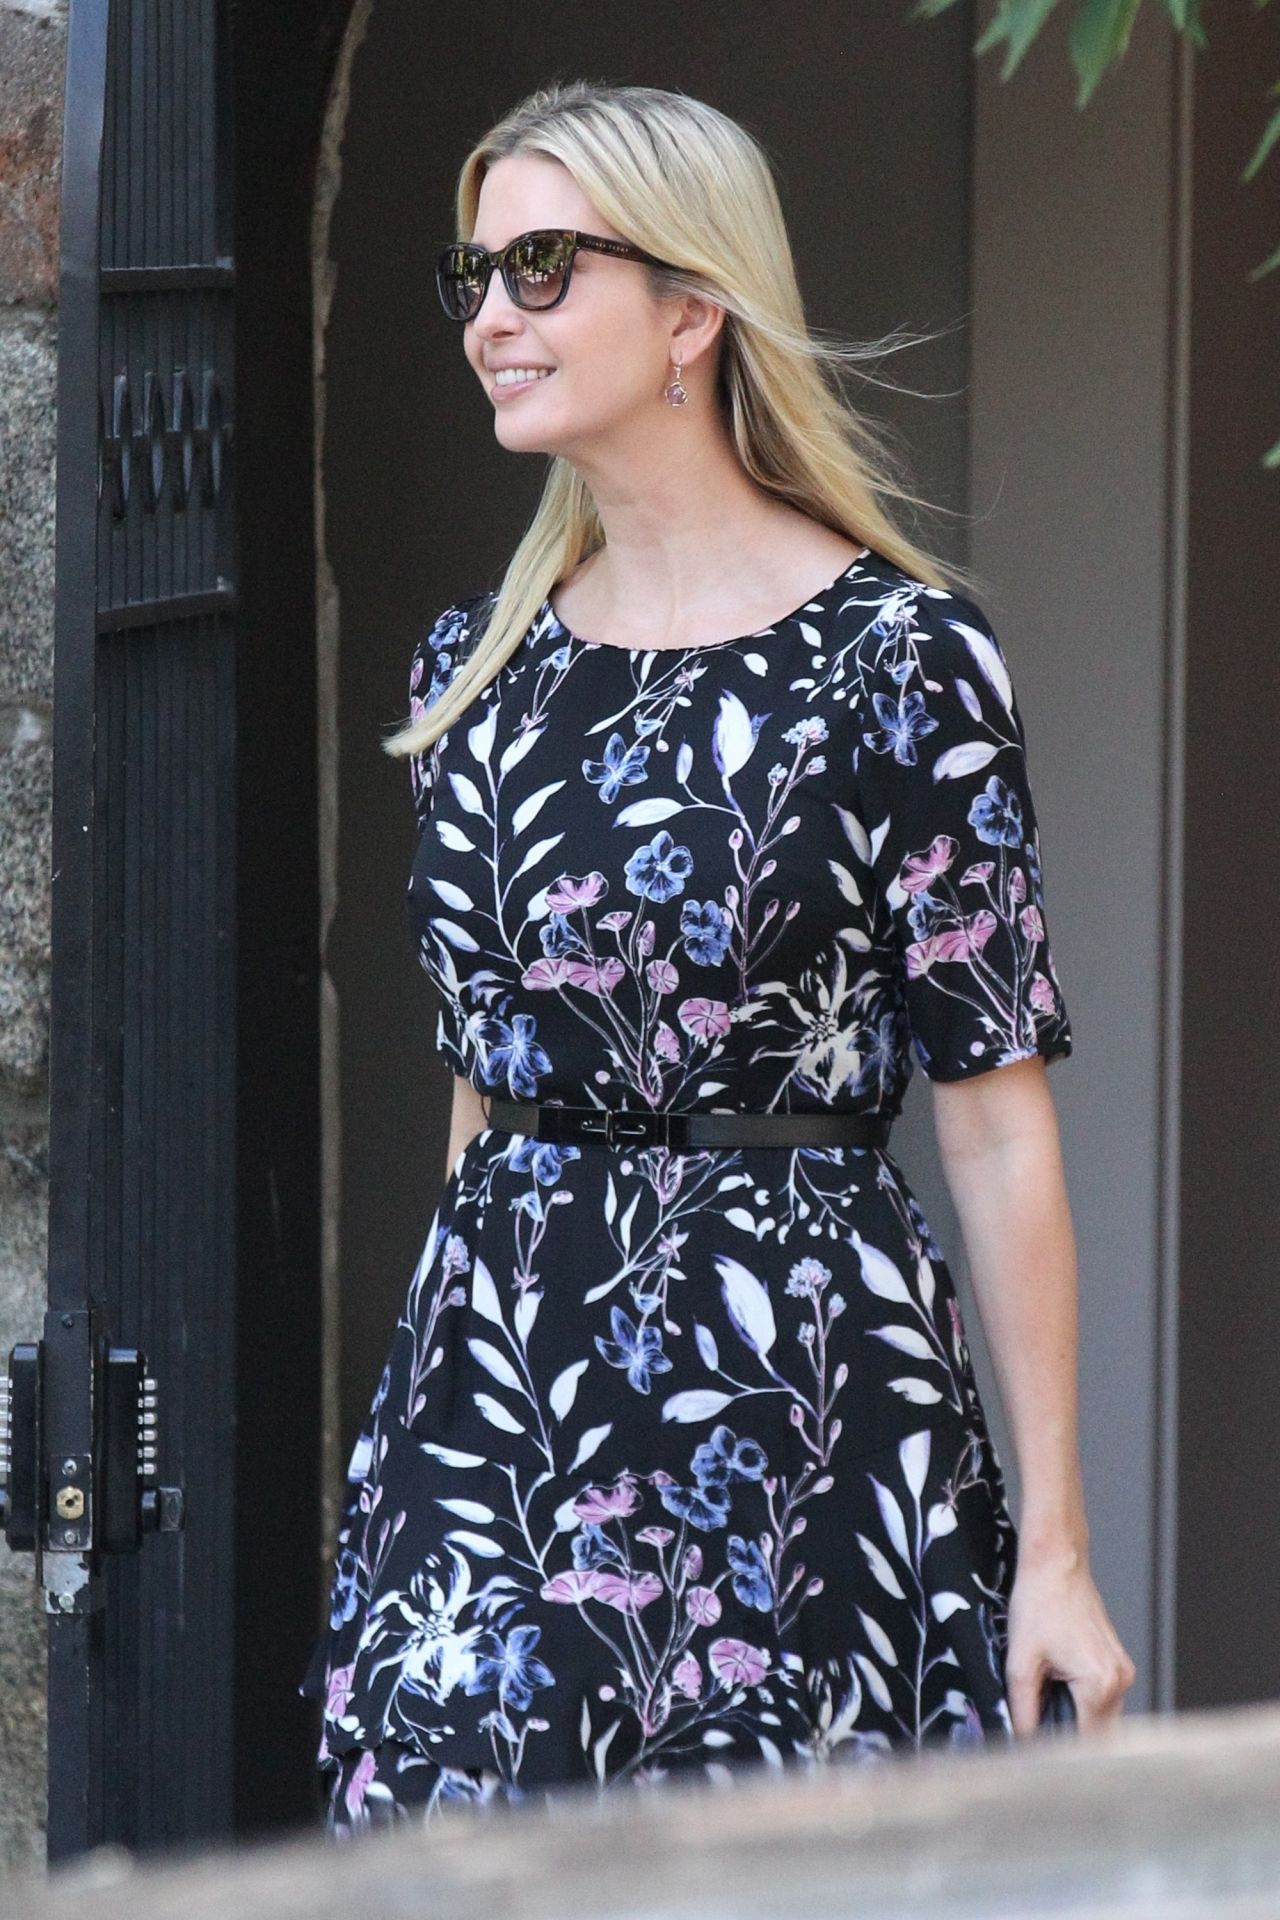 Ivanka Trump Wearing A Big Smile And A Pretty Floral Dress